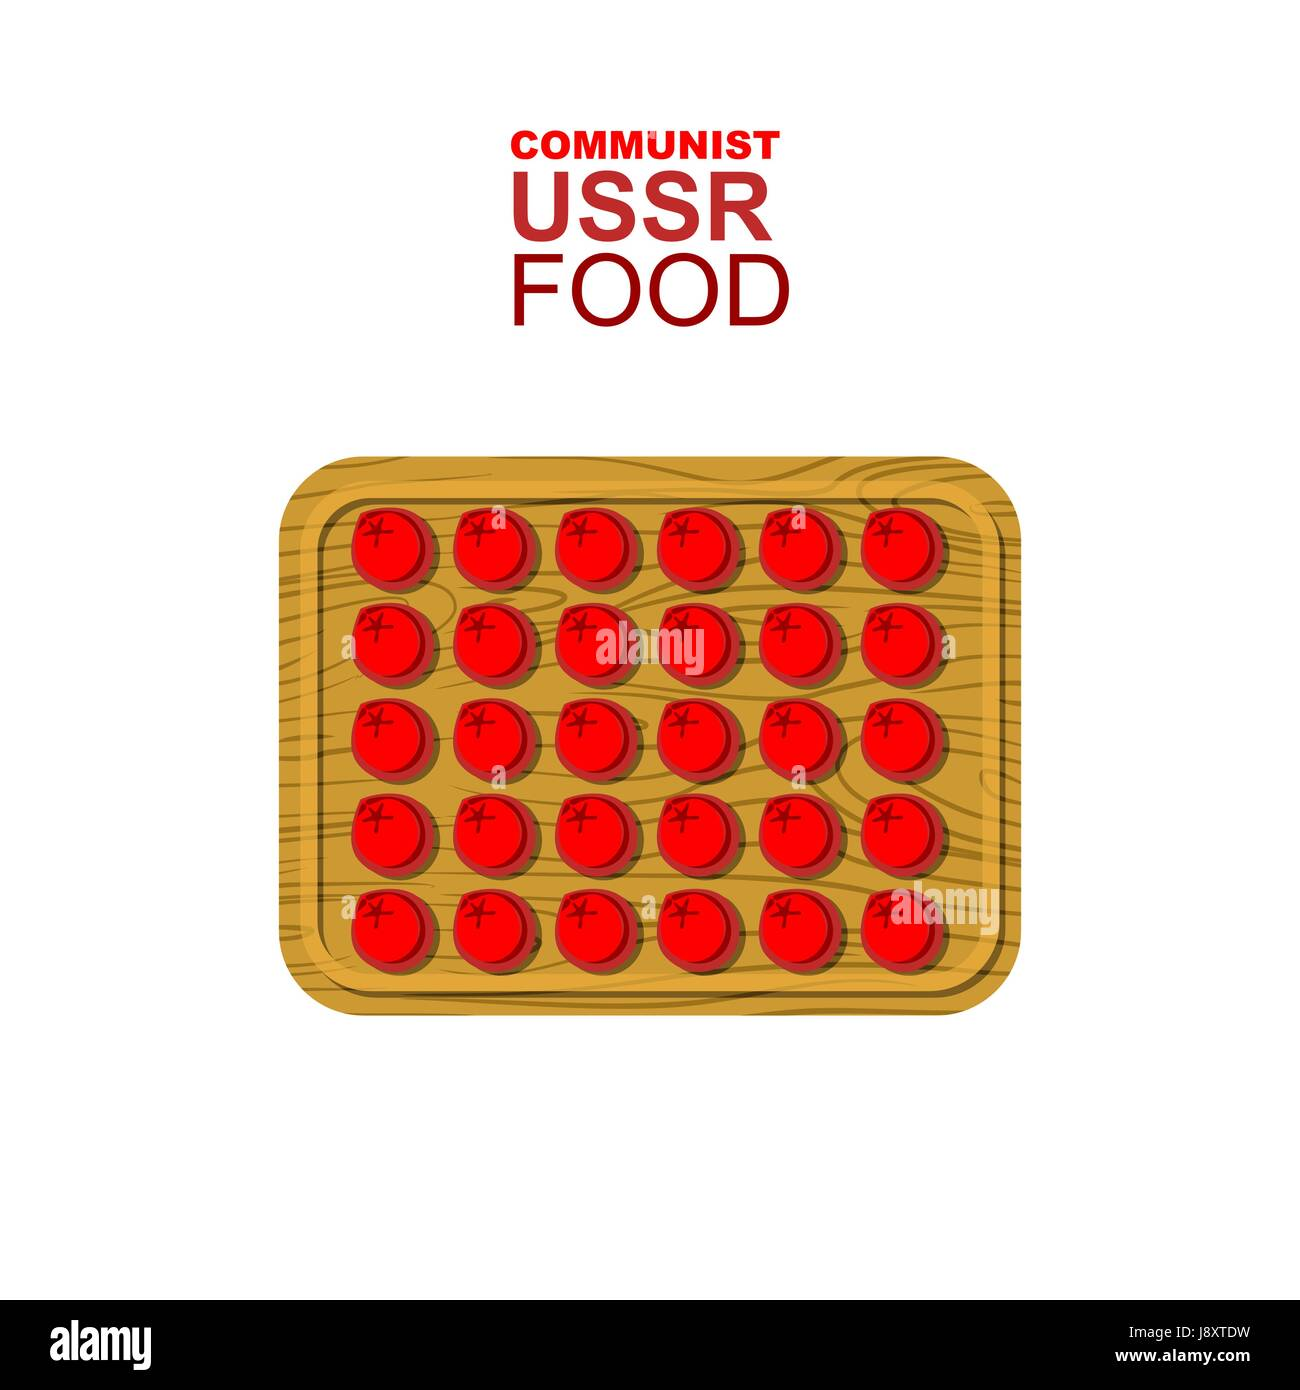 Dumplings on a wooden cutting board. Communist red dumplings. Food from USSR. Vector illustration of allegory. - Stock Vector